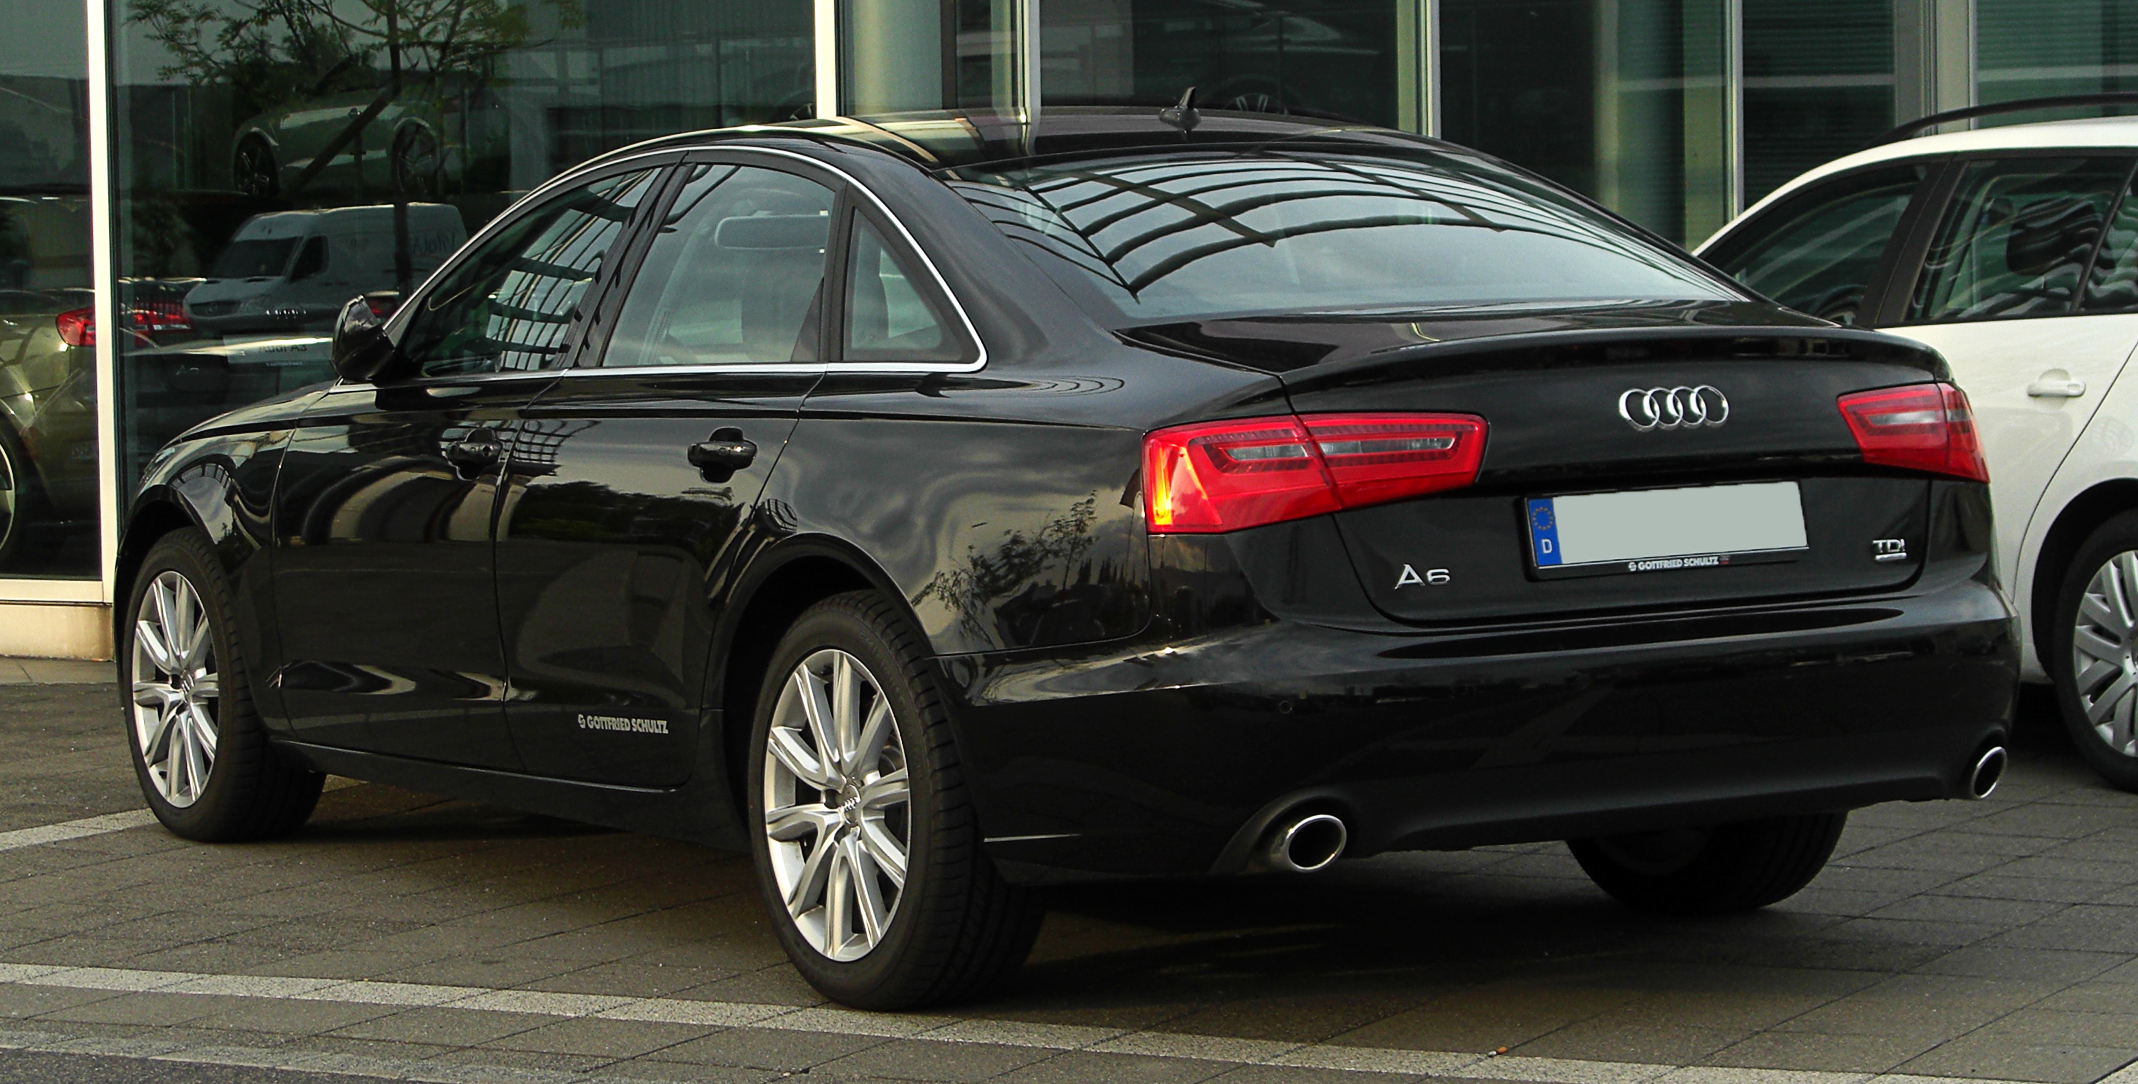 file audi a6 3 0 tdi quattro c7 heckansicht 13 mai 2011 wikimedia commons. Black Bedroom Furniture Sets. Home Design Ideas